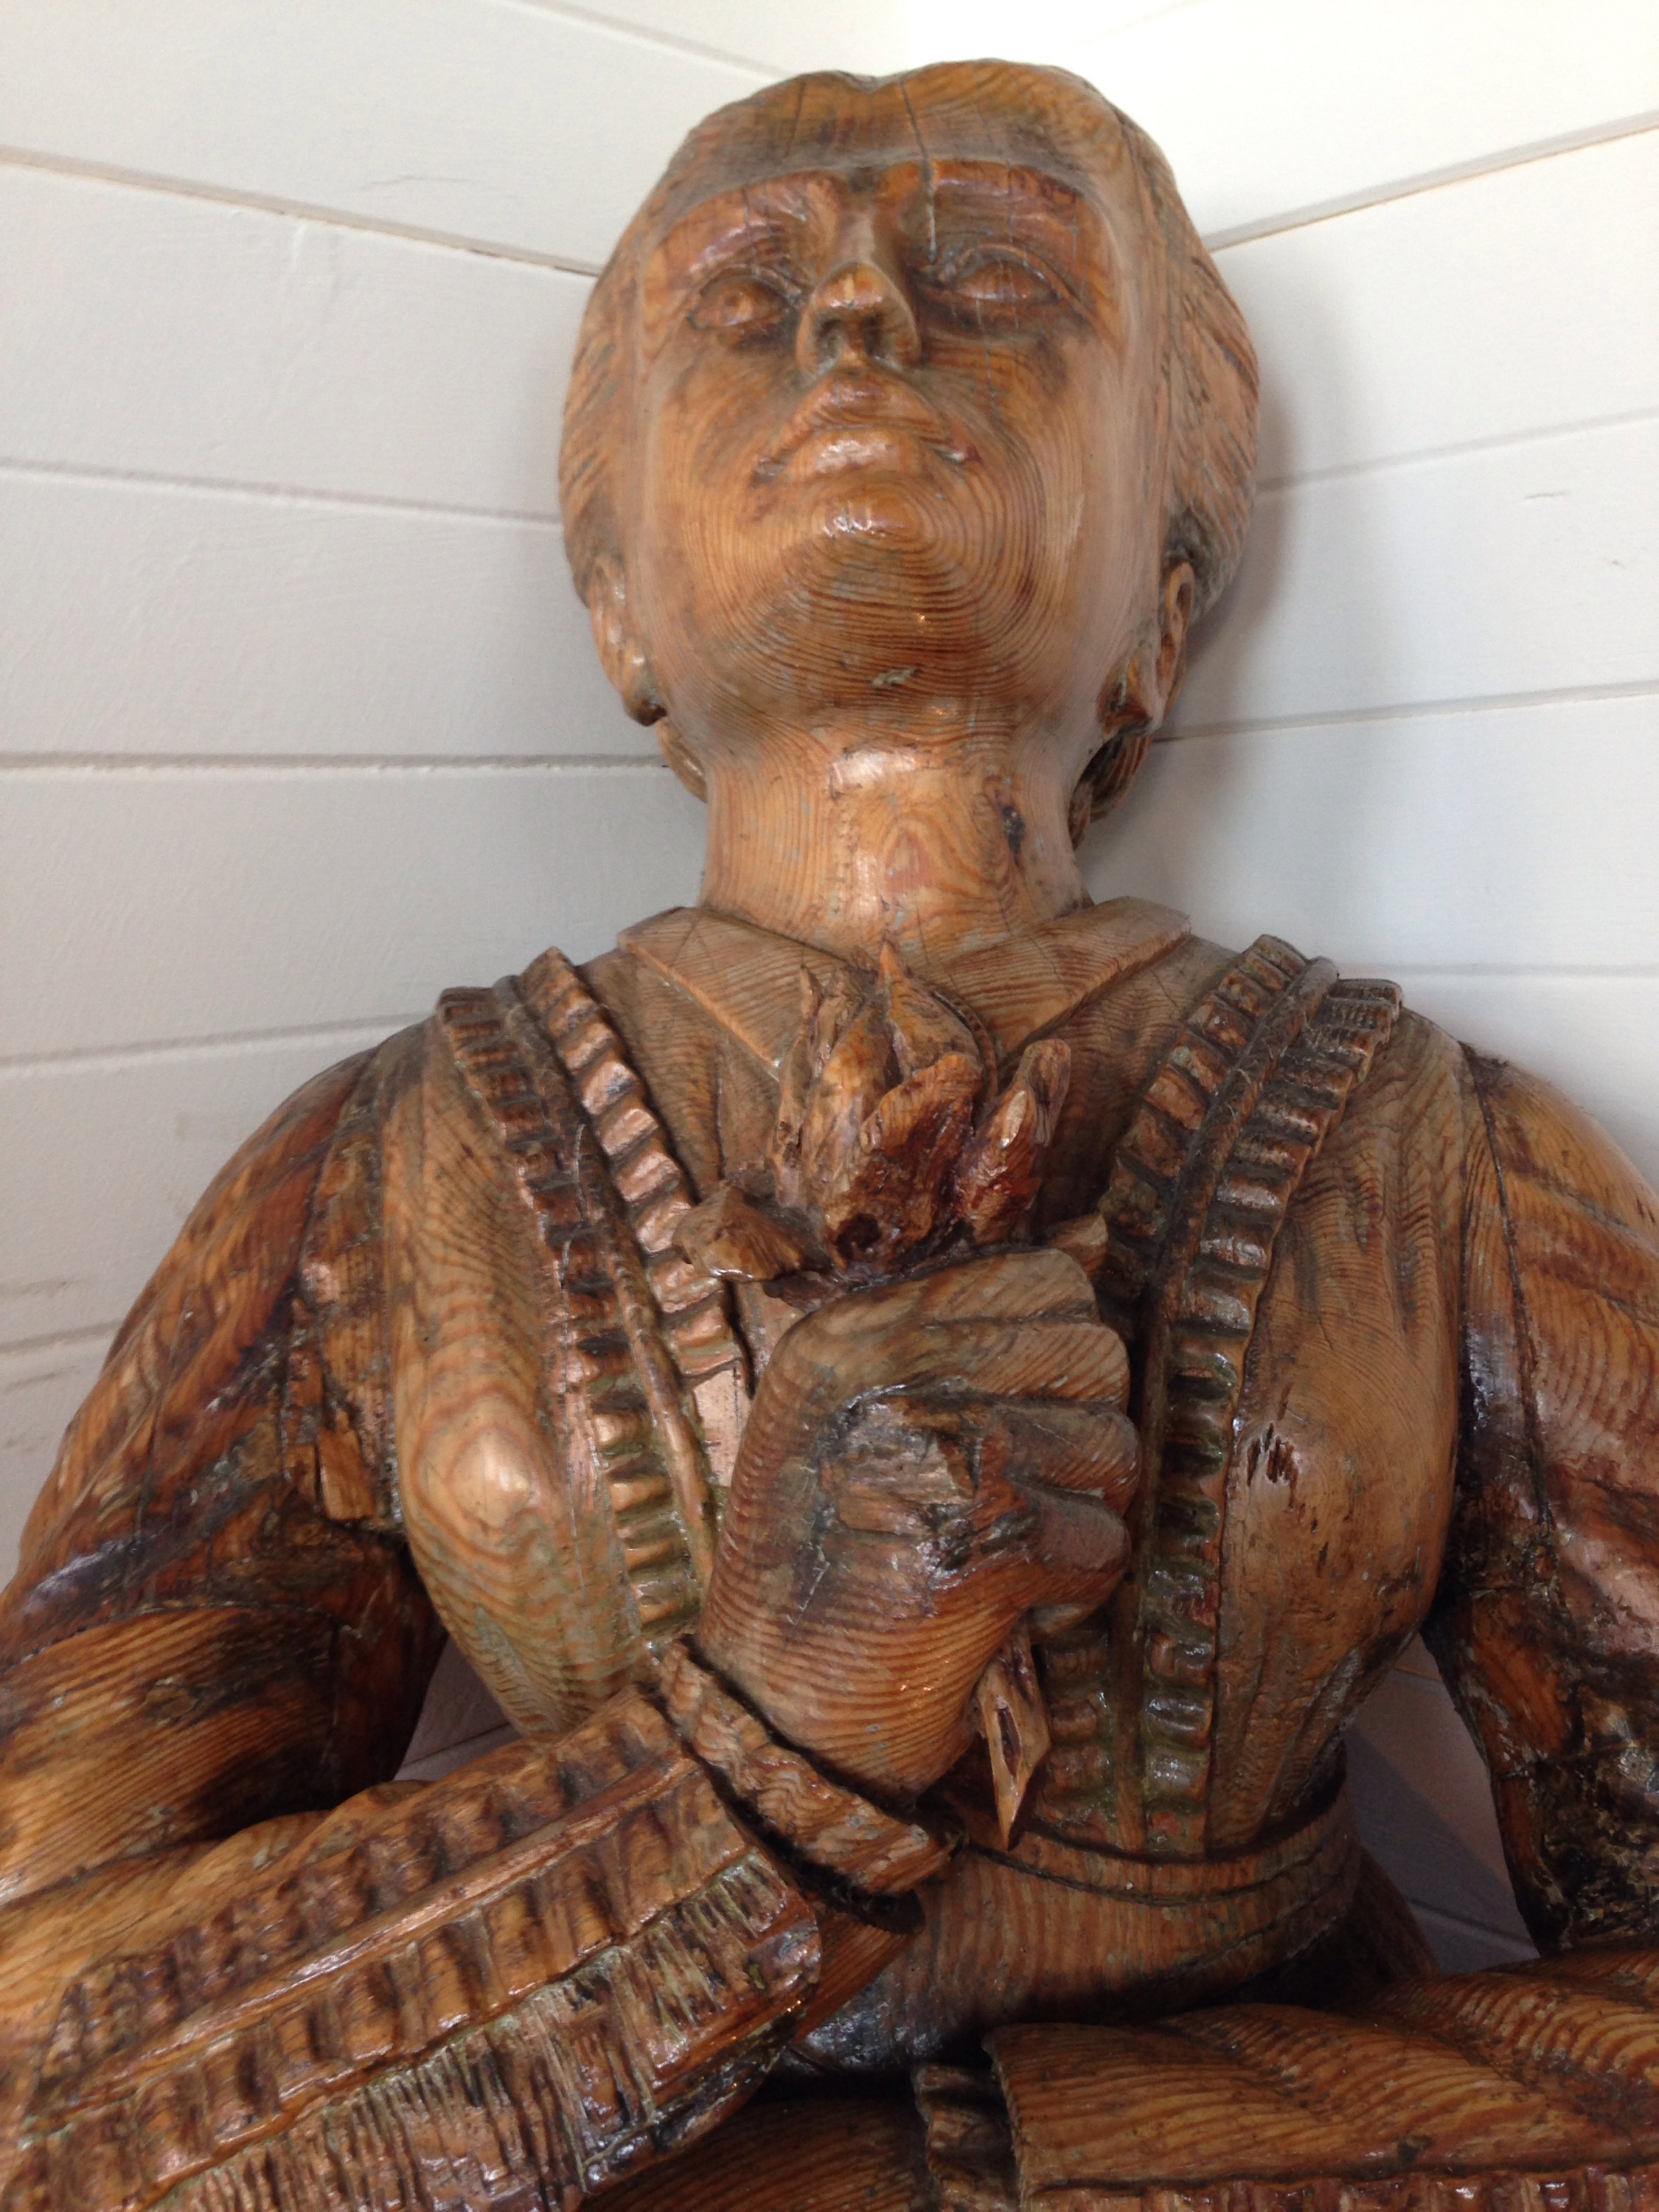 figurehead from the wreck of Rupert on display in the watch house tvlb museum